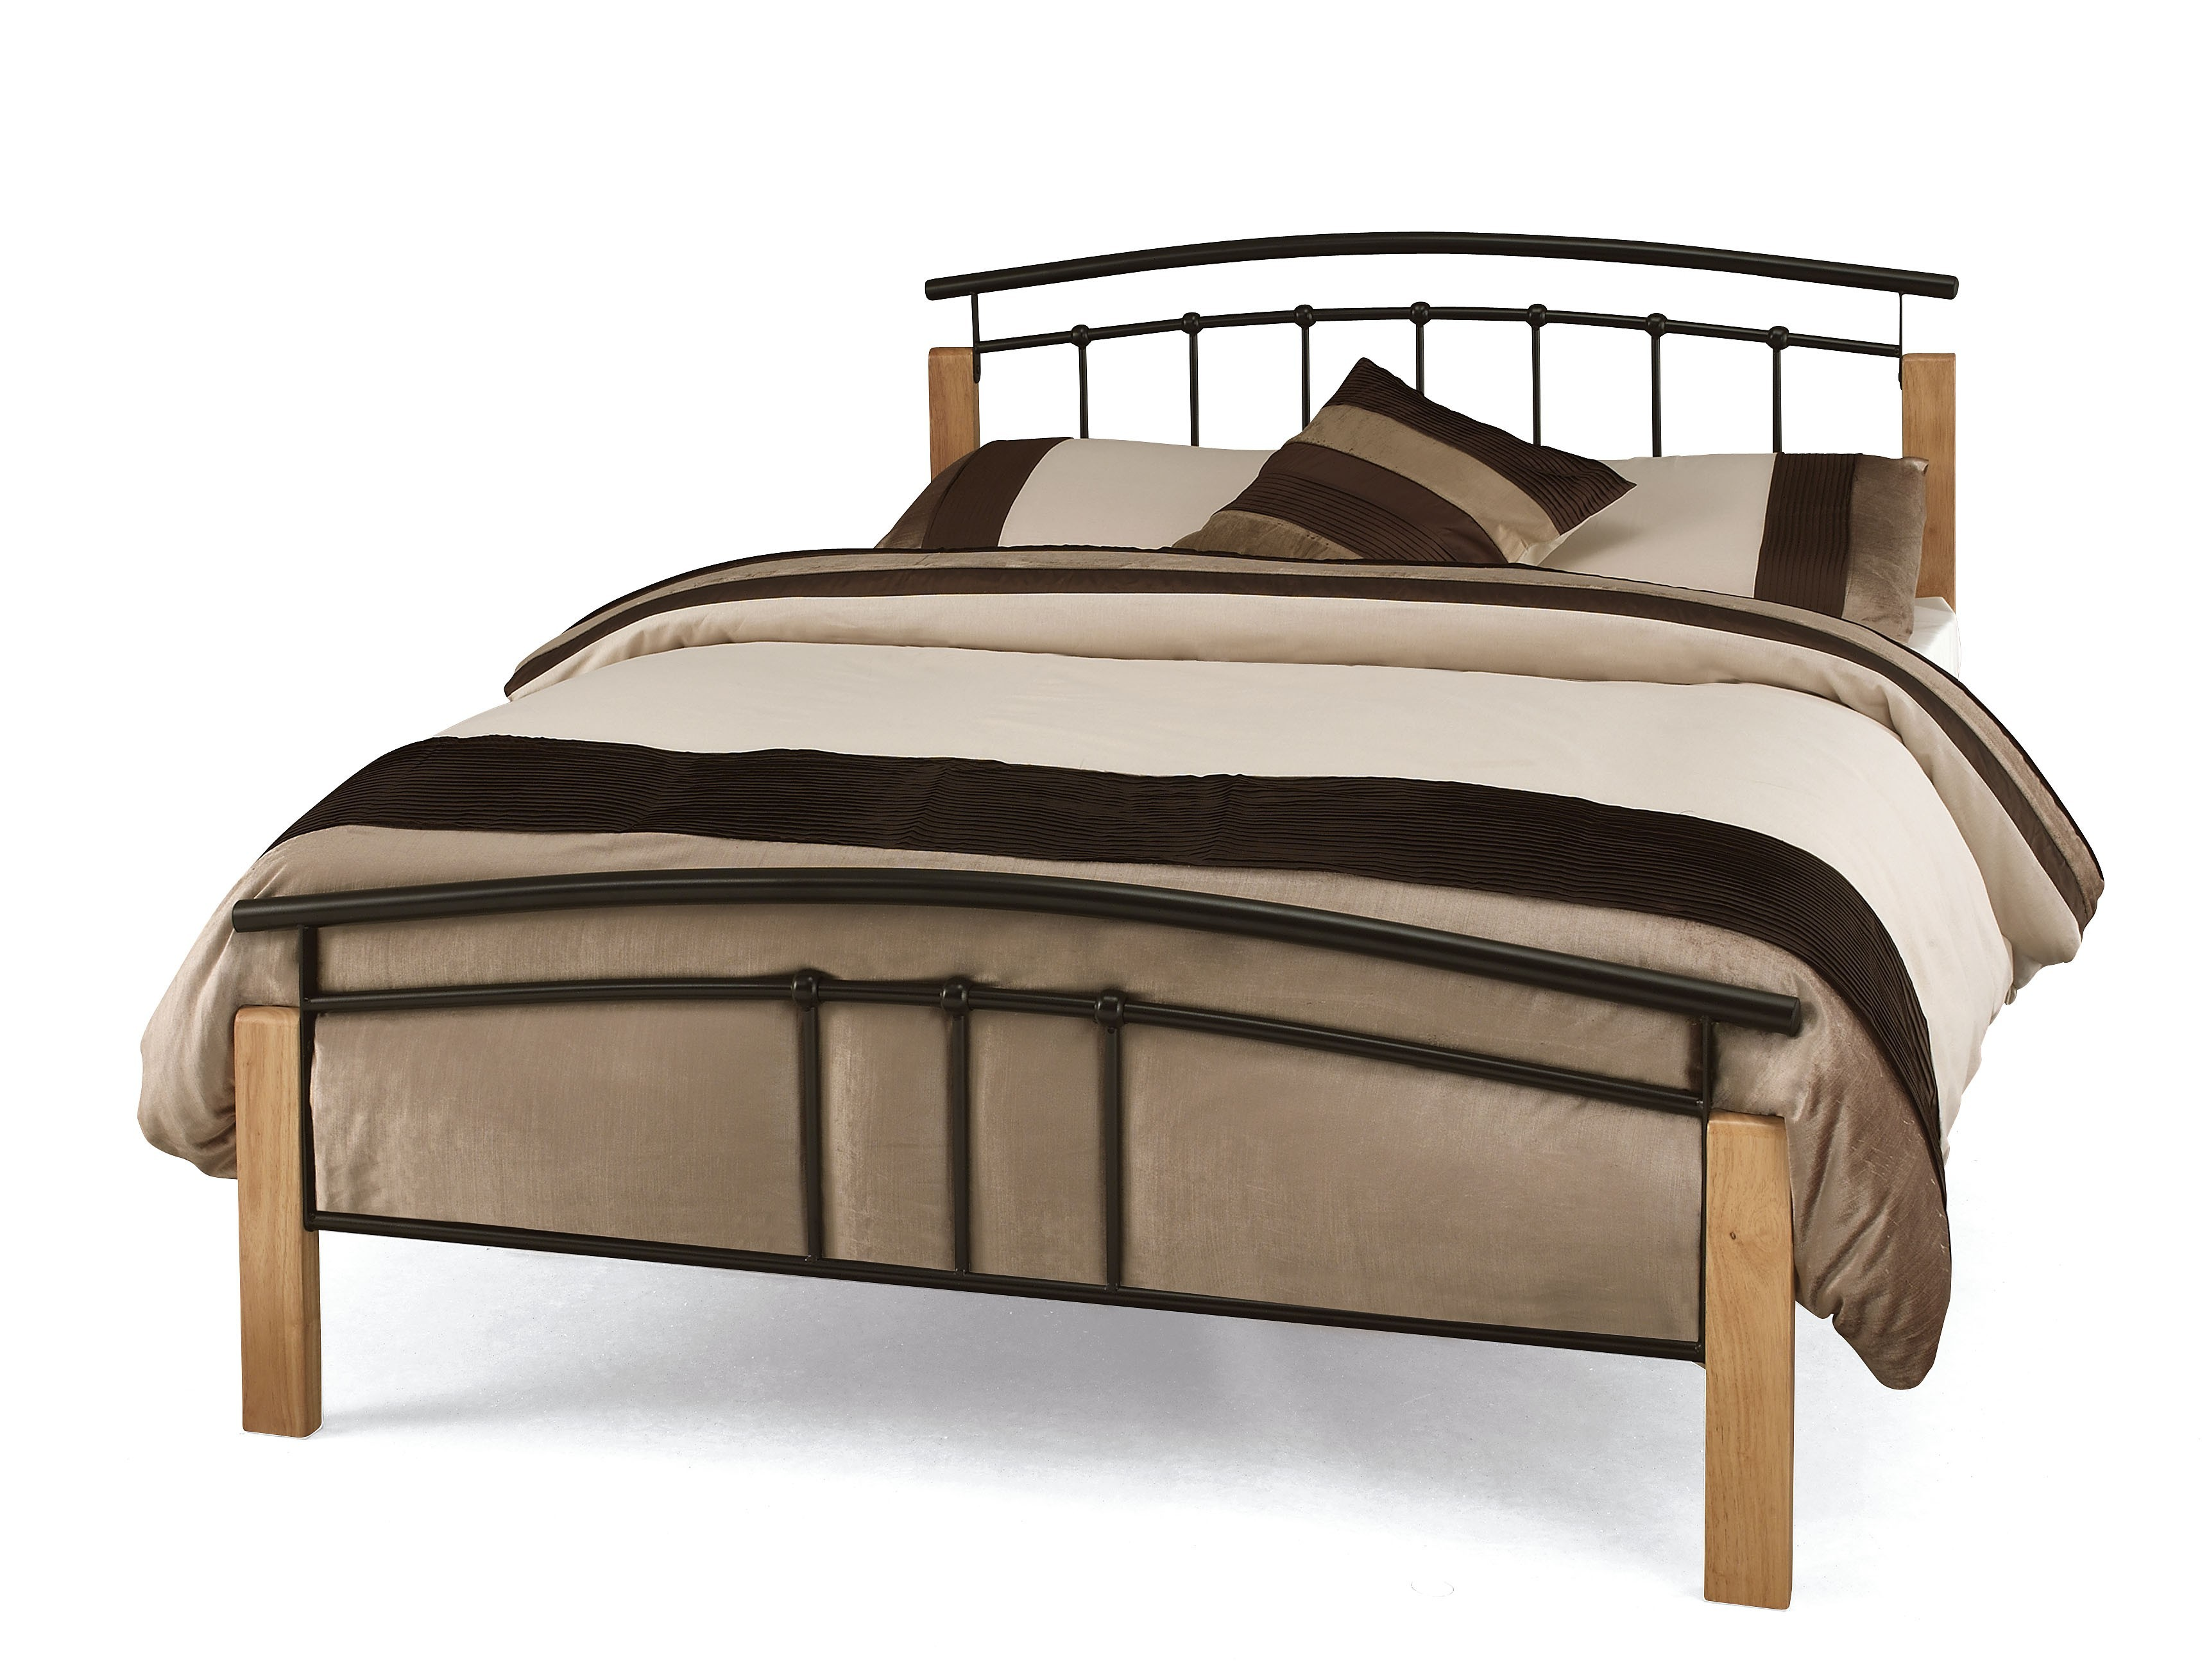 https://www.firstfurniture.co.uk/pub/media/catalog/product/t/e/tetras_black_bed_1.jpg